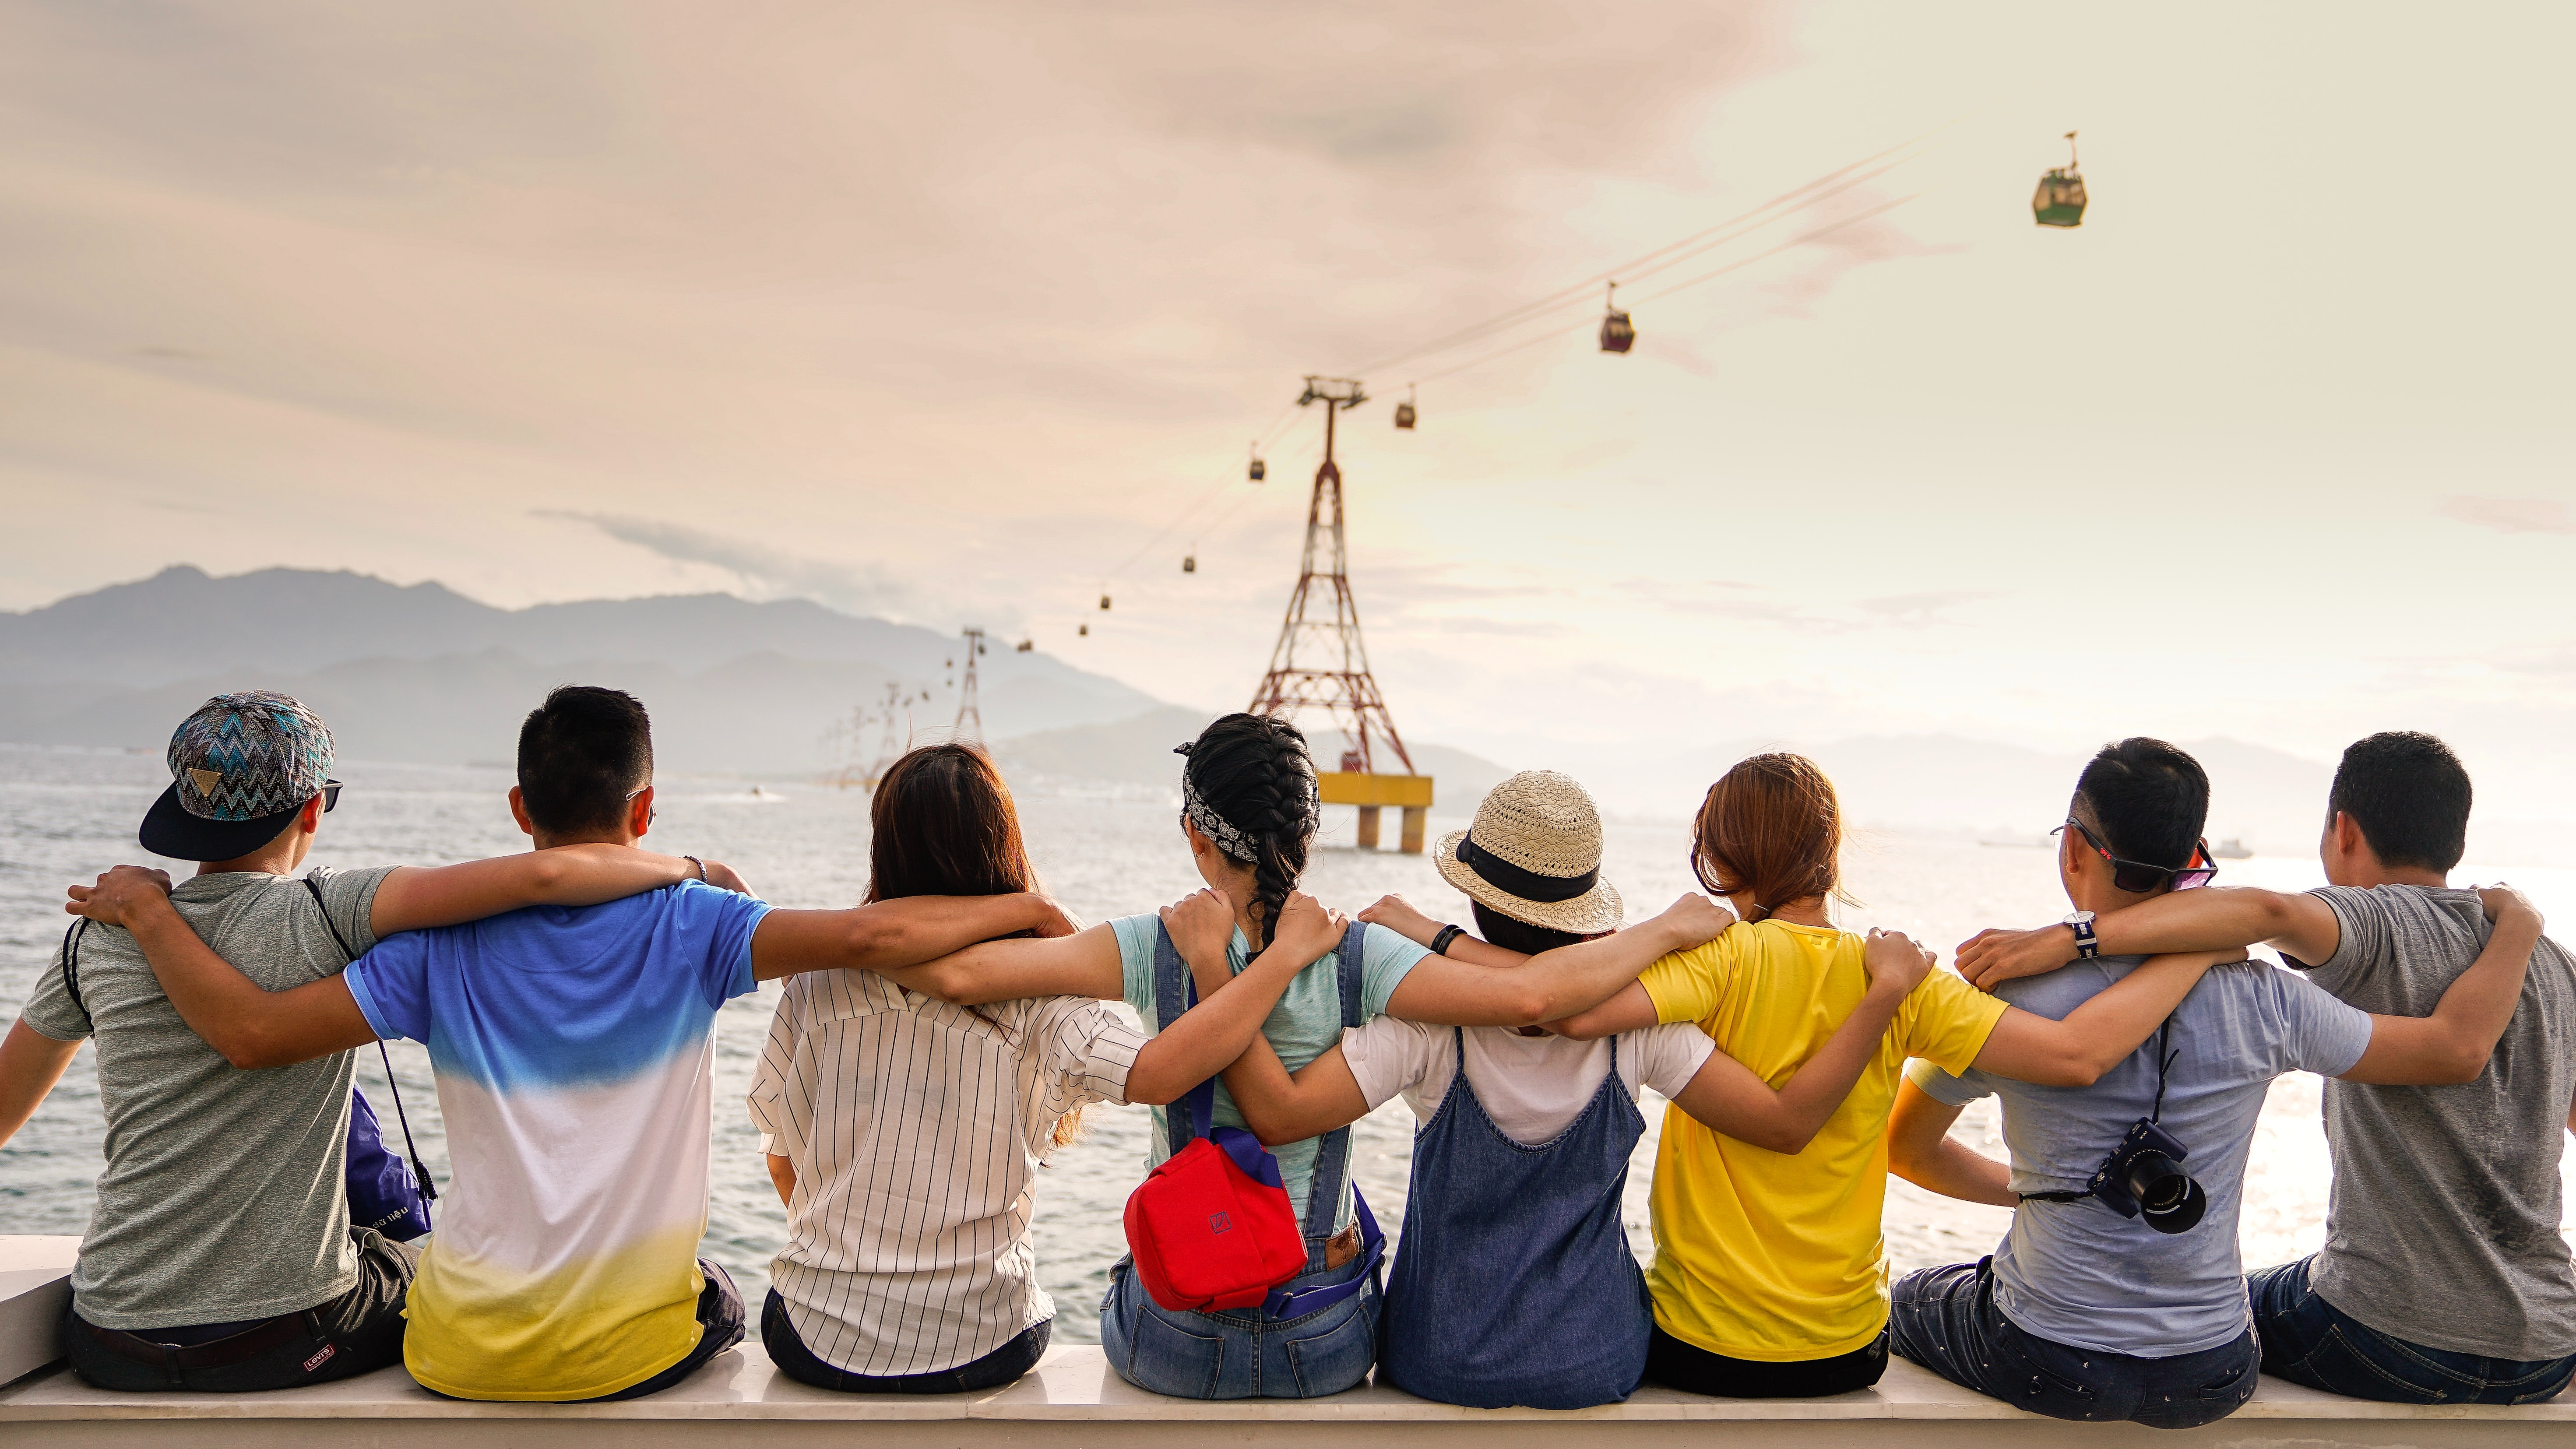 Group of people sitting on bench with arms around each other looking at water; image by Duy Pham, via Unsplash.com.